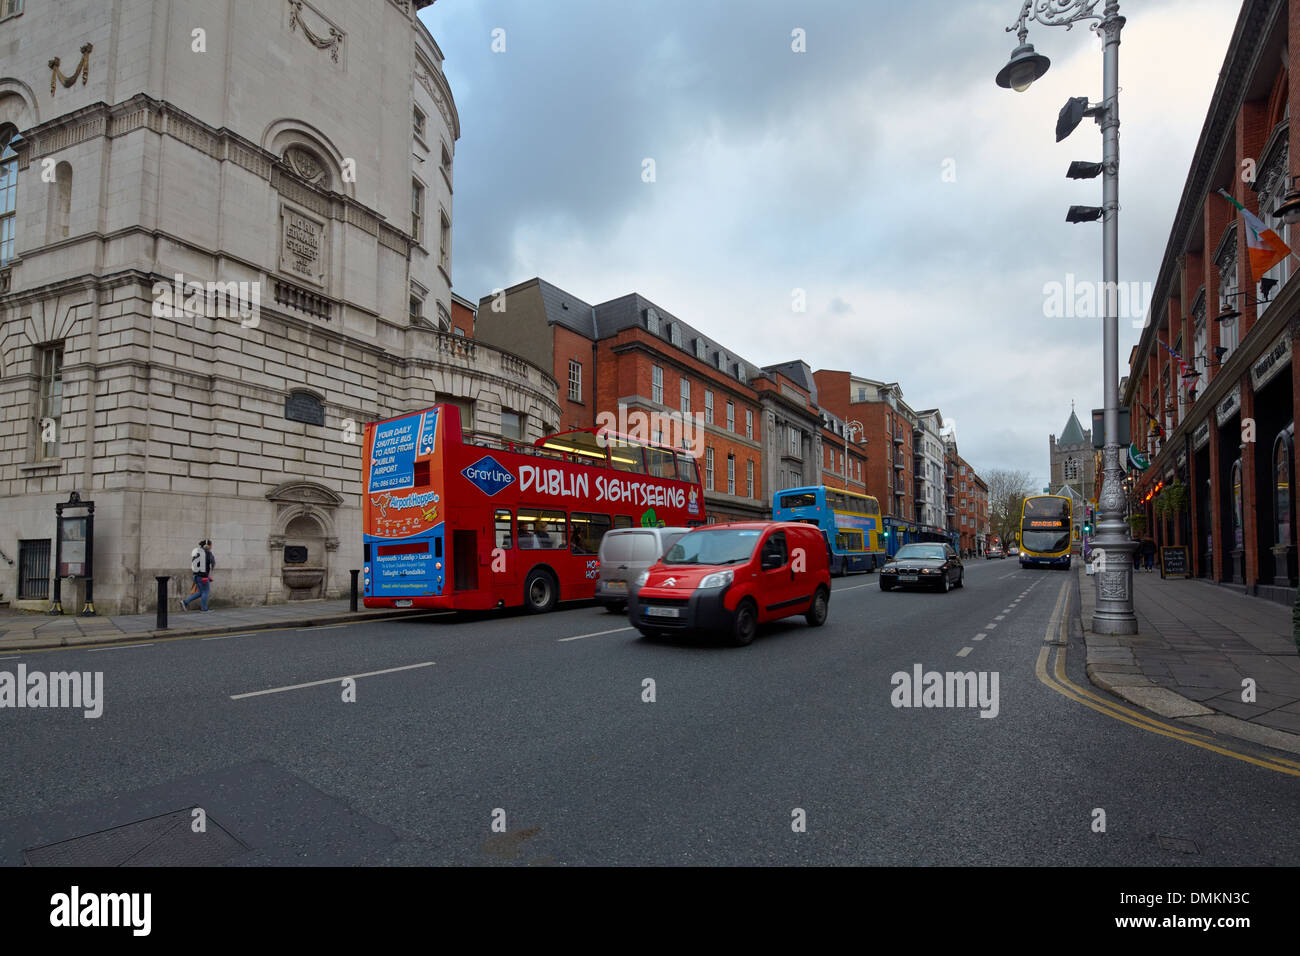 Dublin sightseeing bus, Lord Edward Street, Dublin, Ireland, Europe - Stock Image